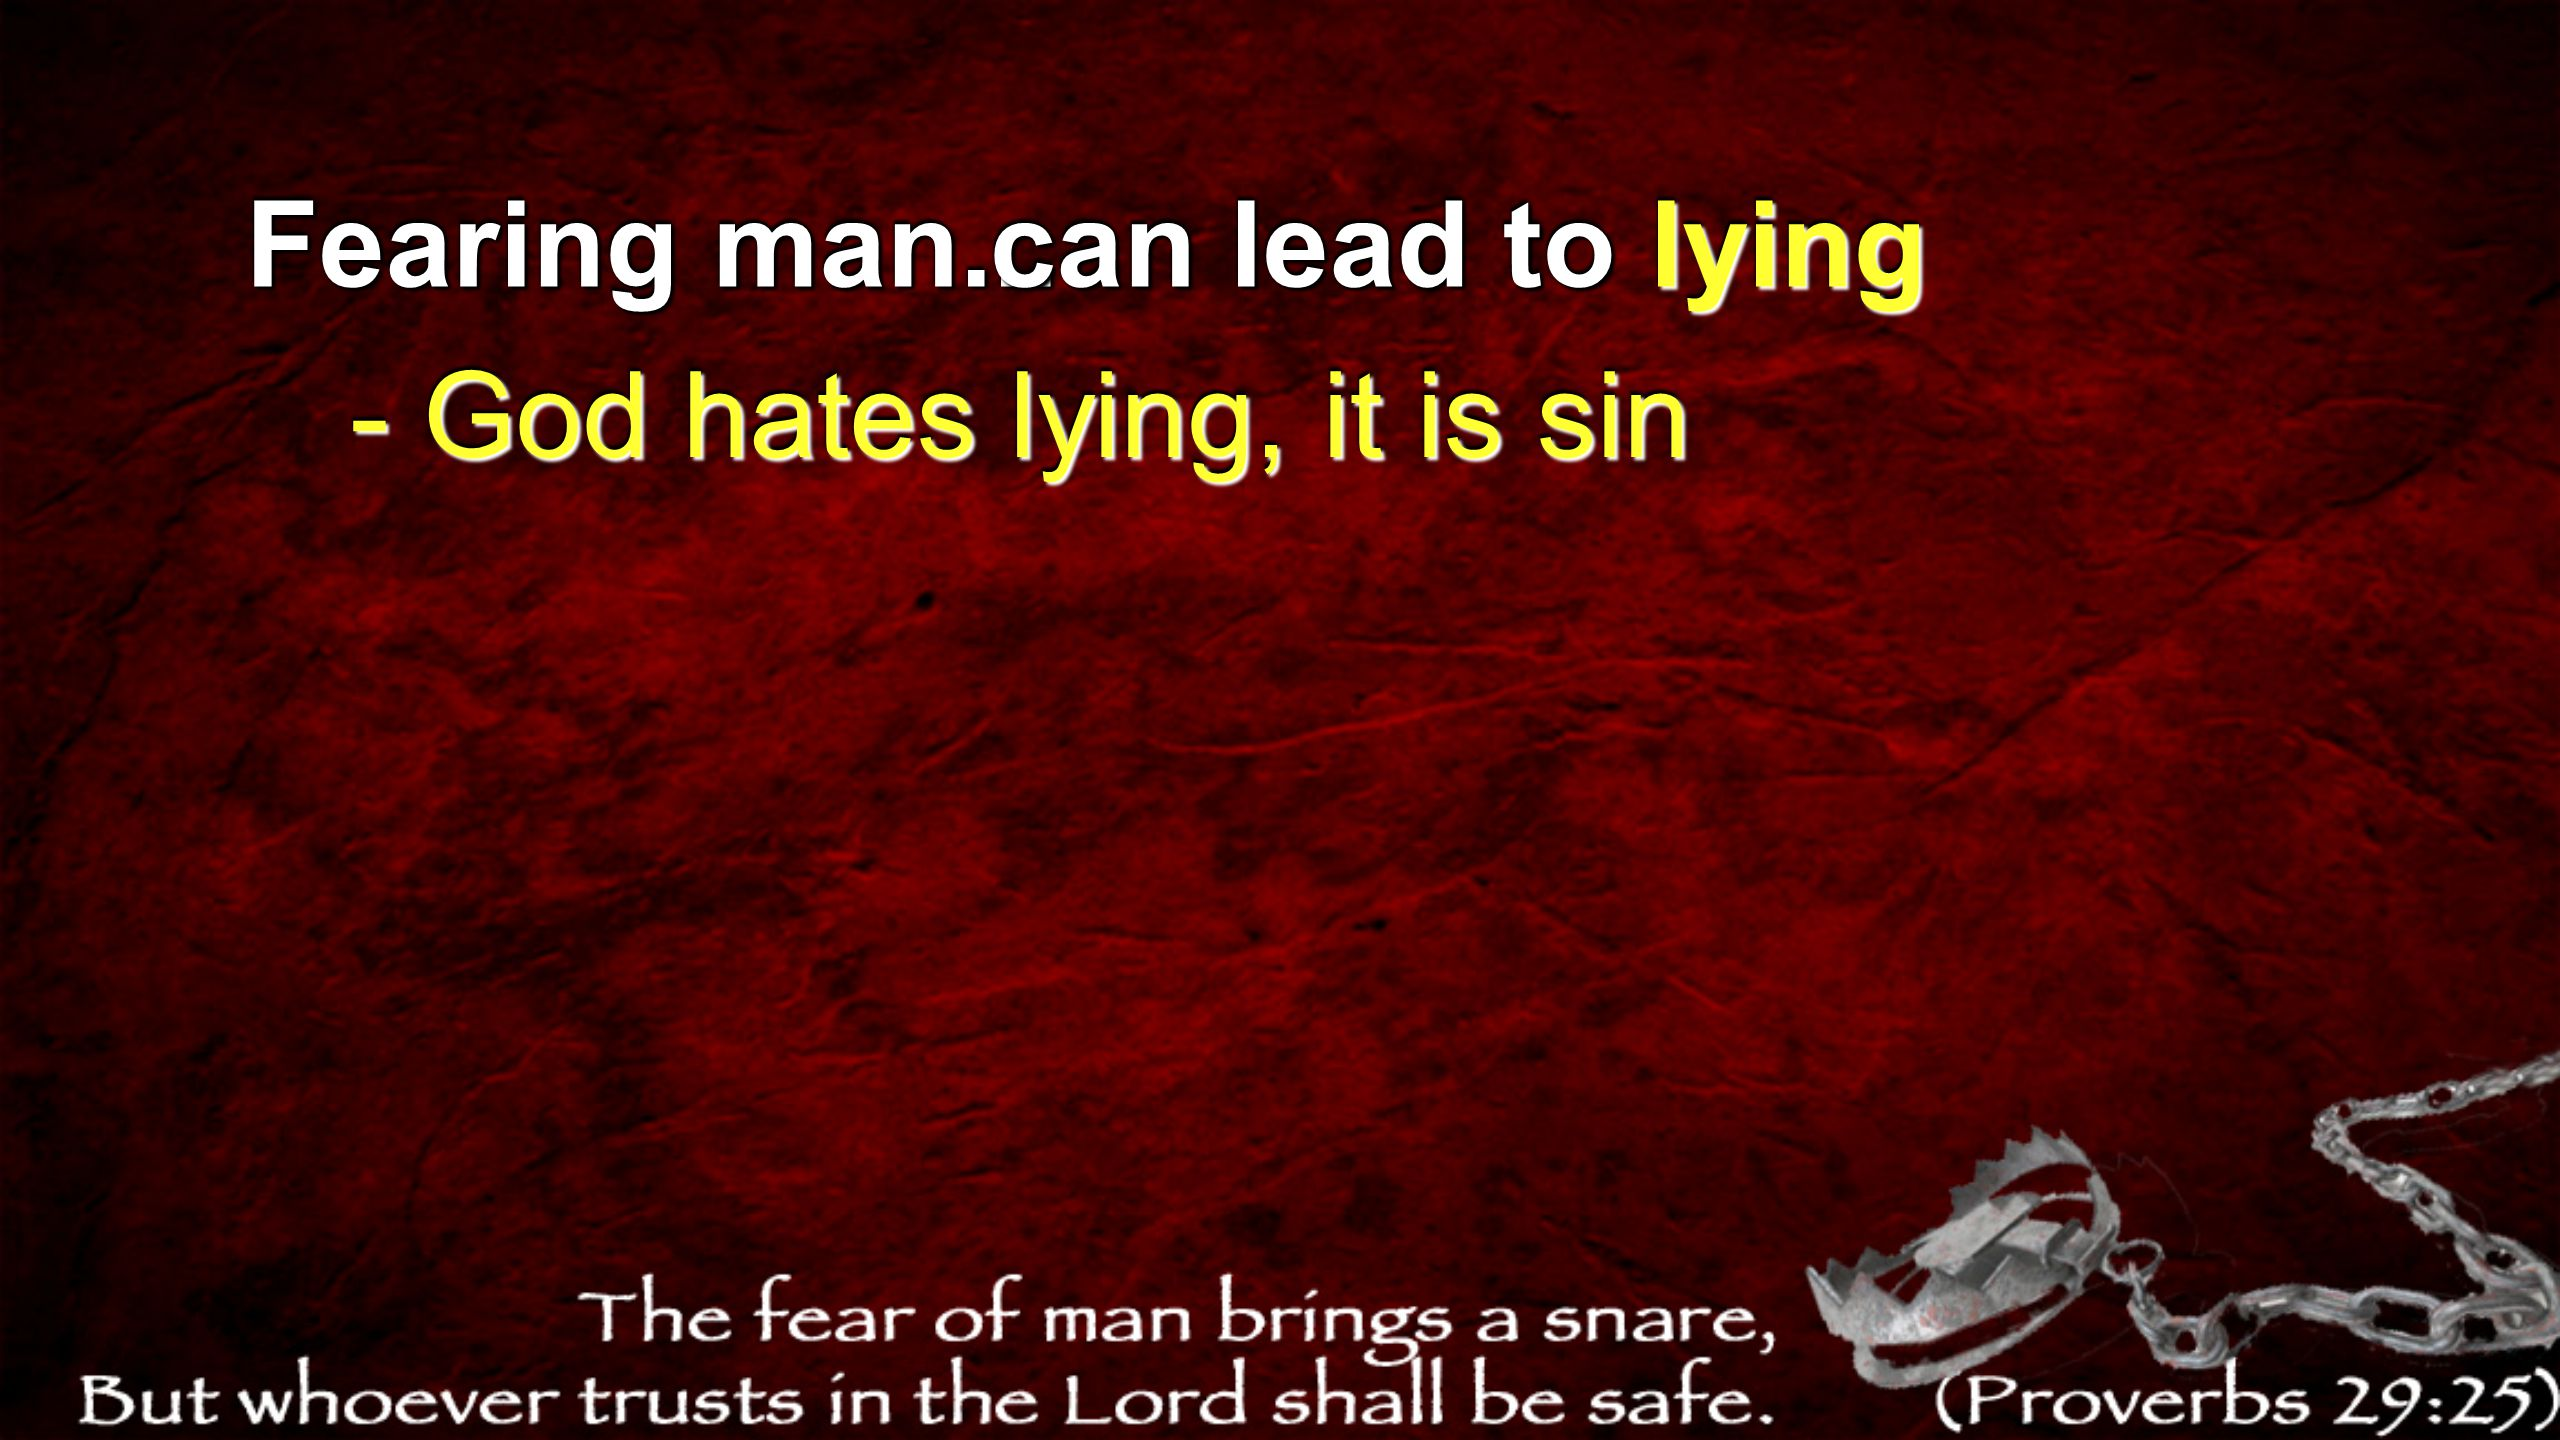 Fearing man... can lead to lying - God hates lying, it is sin